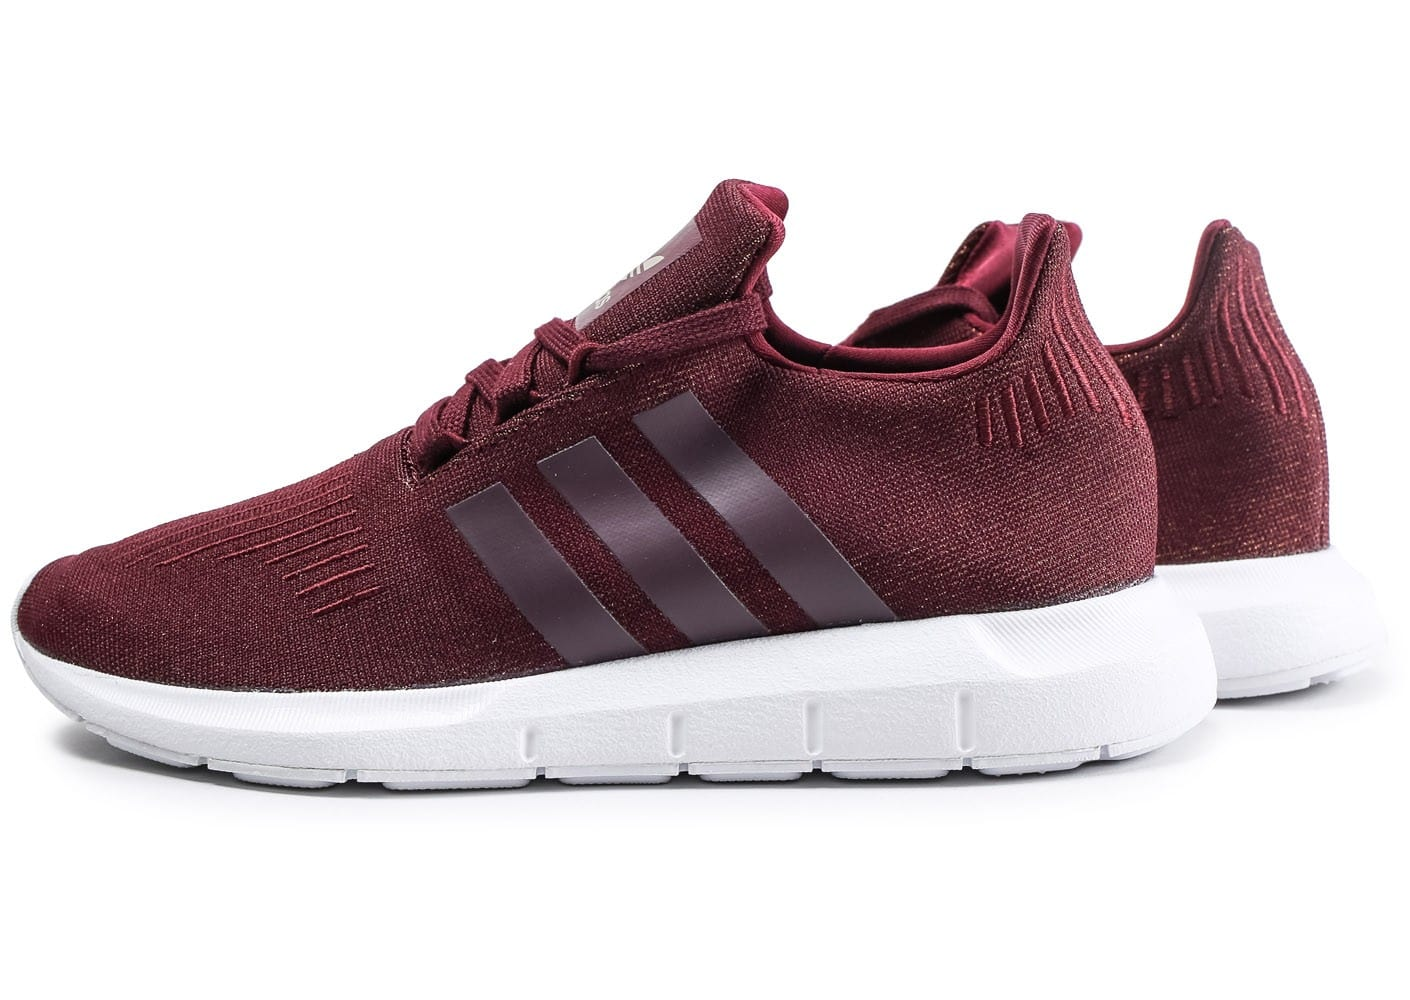 Bordeaux Chausport Chaussures Swift Glitter Adidas Run 8PNnOkw0X